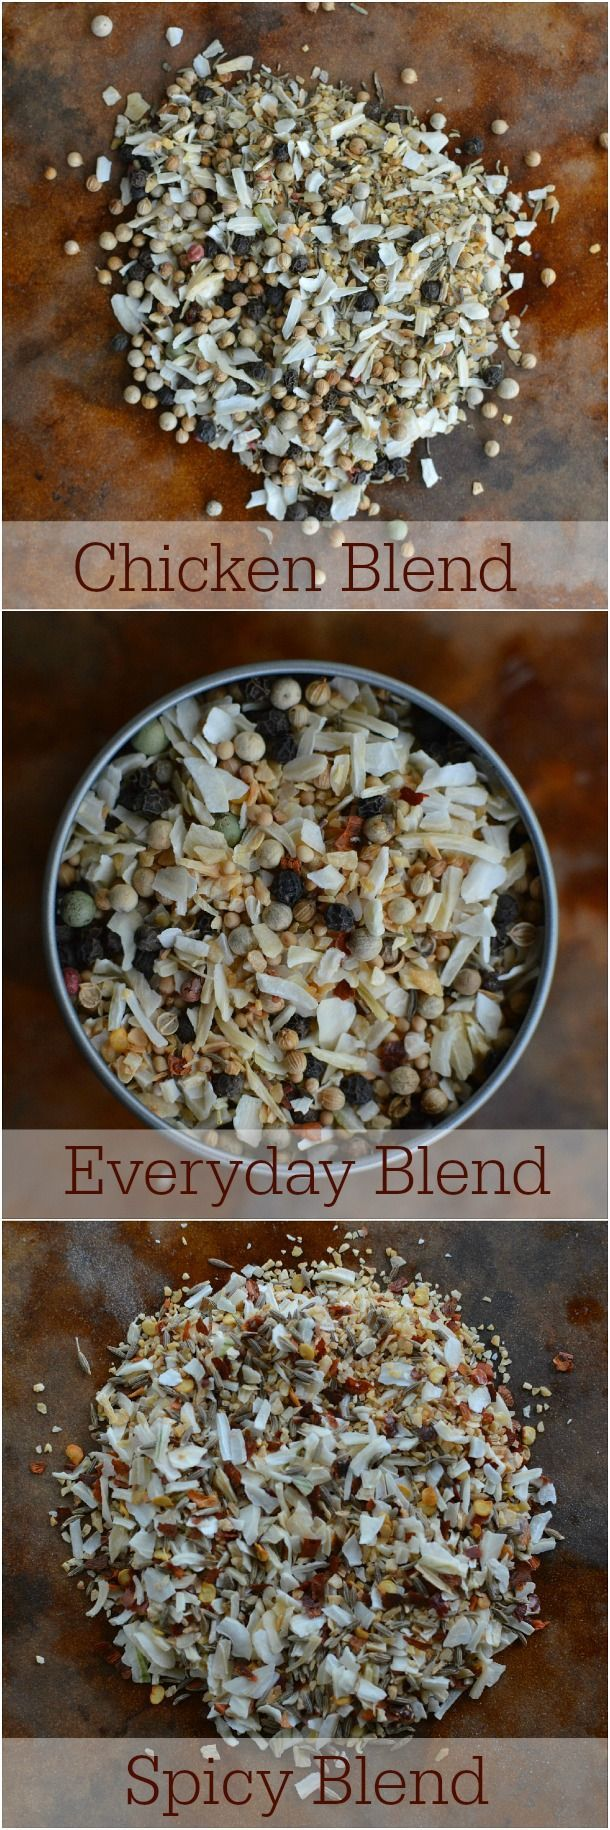 Homemade Spice Blends and Cole & Mason Mills make a great personalized holiday gift! DIY Seasoning Mix for a homemade Christmas gift.